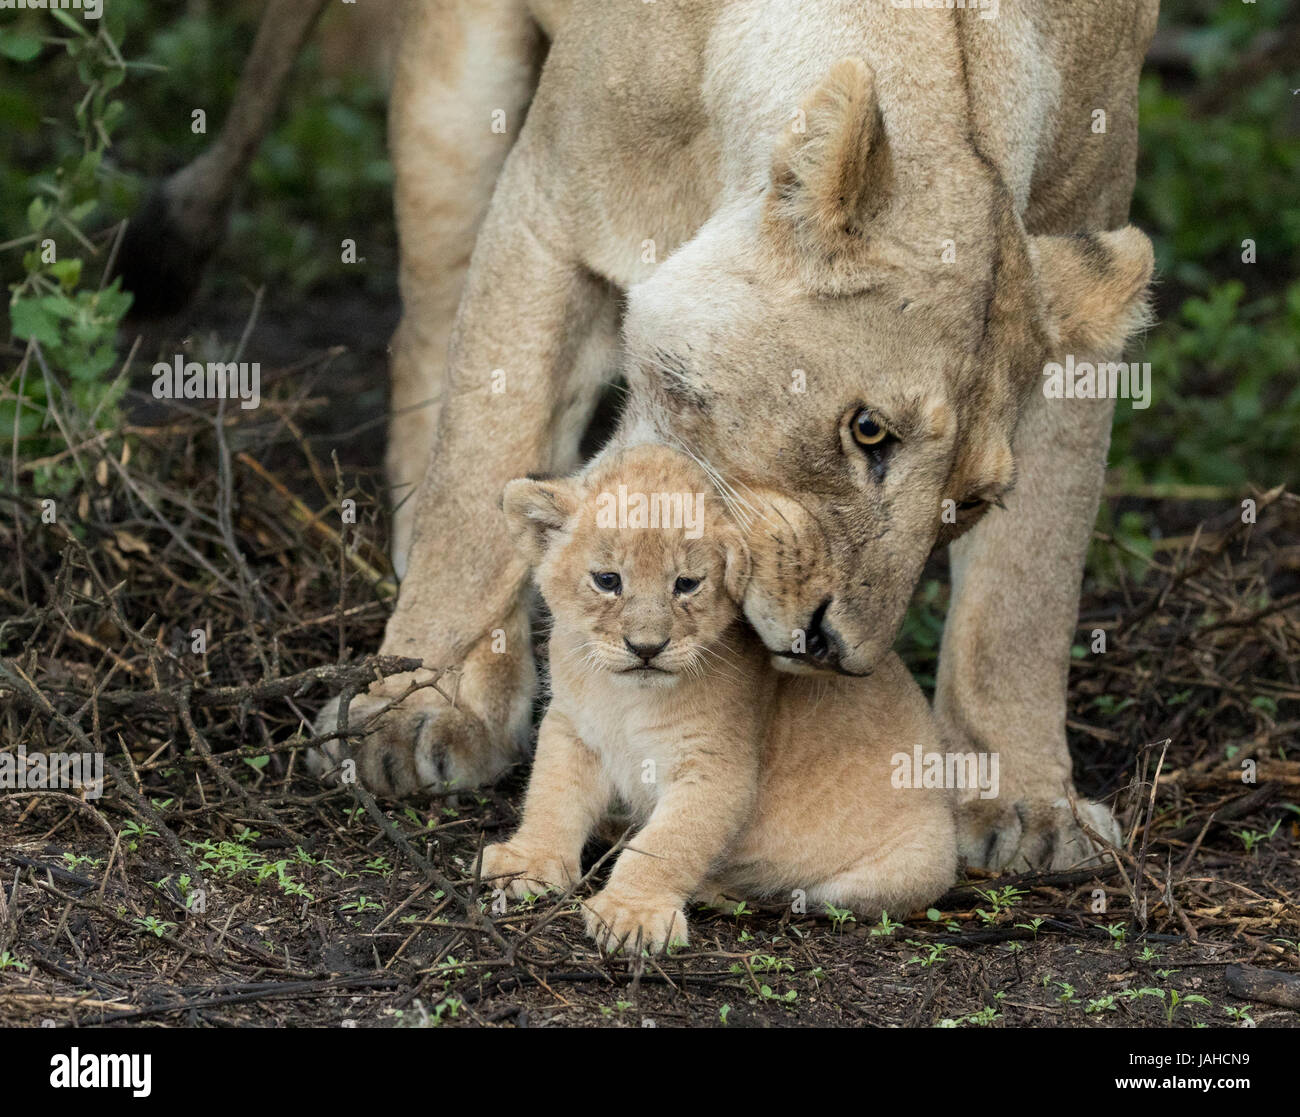 Adult Lioness picking up her small 5 week old cub, Serengeti National Park, Tanzania - Stock Image